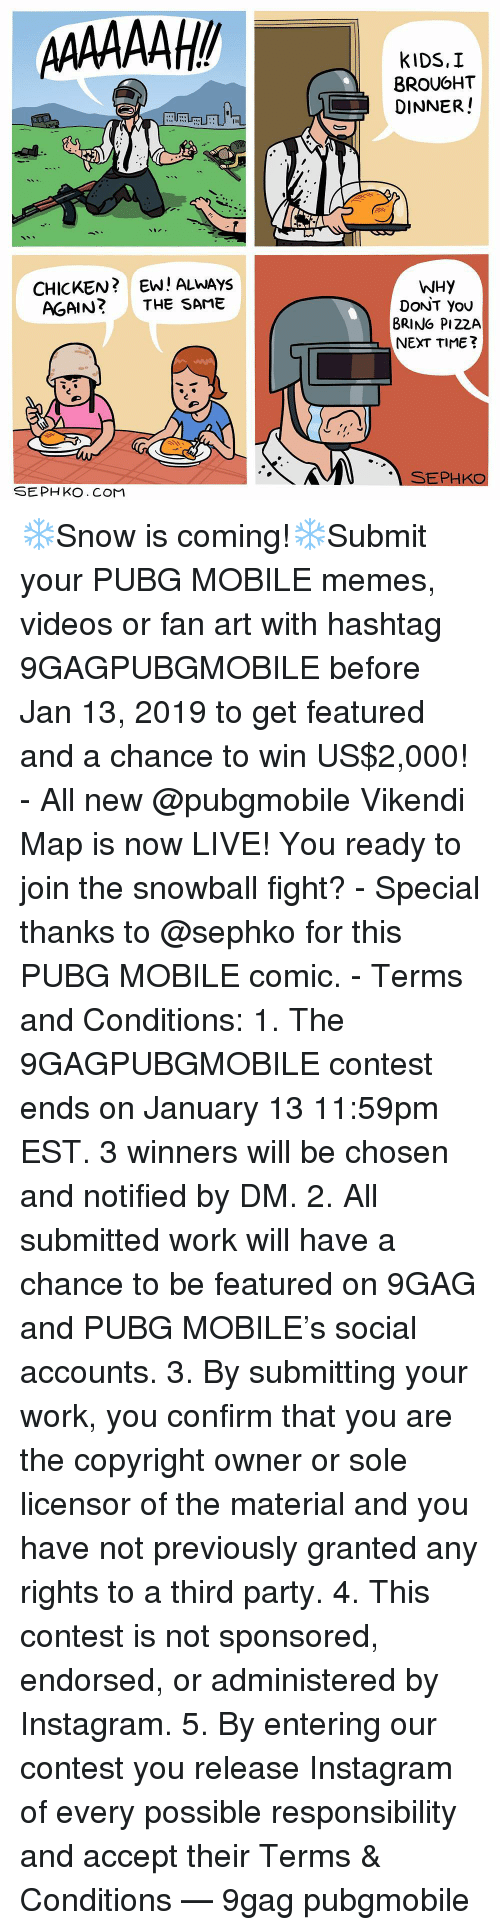 Third Party: BROUGHT  DINNER!  sae  CHICKEN?EW! ALWAYS  AGAIN? THE SAME  WHY  DoNT You  BRING PI22A  NEXT TIME?  SEPHKO  SEPH KO. CoMM ❄️Snow is coming!❄️Submit your PUBG MOBILE memes, videos or fan art with hashtag 9GAGPUBGMOBILE before Jan 13, 2019 to get featured and a chance to win US$2,000! - All new @pubgmobile Vikendi Map is now LIVE! You ready to join the snowball fight? - Special thanks to @sephko for this PUBG MOBILE comic. - Terms and Conditions: 1. The 9GAGPUBGMOBILE contest ends on January 13 11:59pm EST. 3 winners will be chosen and notified by DM. 2. All submitted work will have a chance to be featured on 9GAG and PUBG MOBILE's social accounts. 3. By submitting your work, you confirm that you are the copyright owner or sole licensor of the material and you have not previously granted any rights to a third party. 4. This contest is not sponsored, endorsed, or administered by Instagram. 5. By entering our contest you release Instagram of every possible responsibility and accept their Terms & Conditions — 9gag pubgmobile